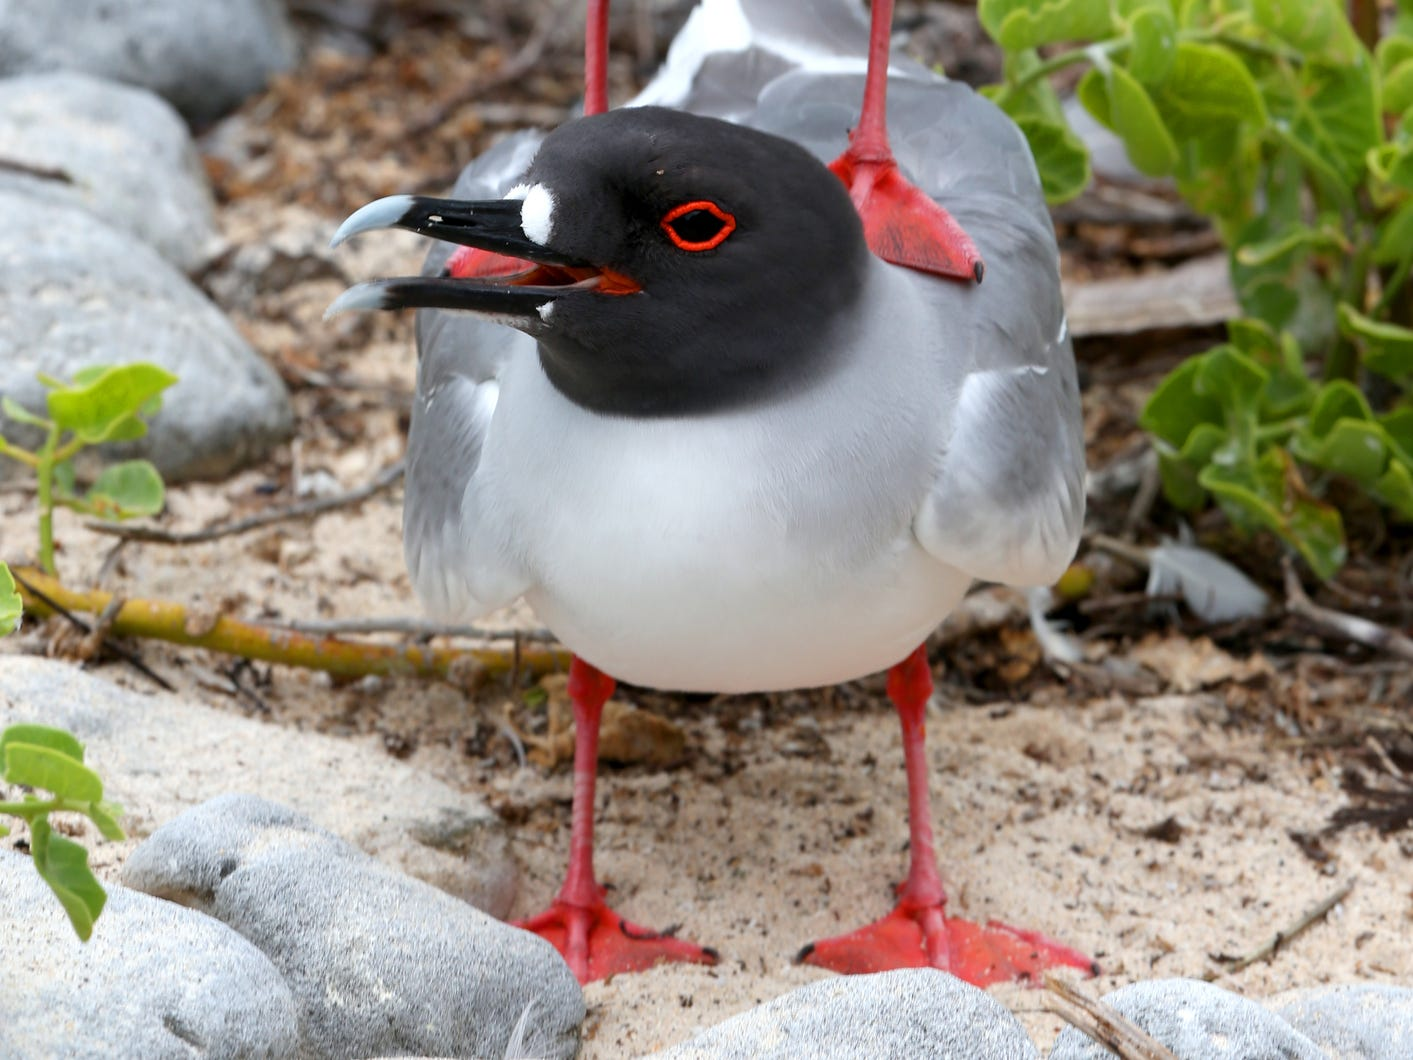 Swallow-tailed gulls in the Galapagos Islands, Ecuador.